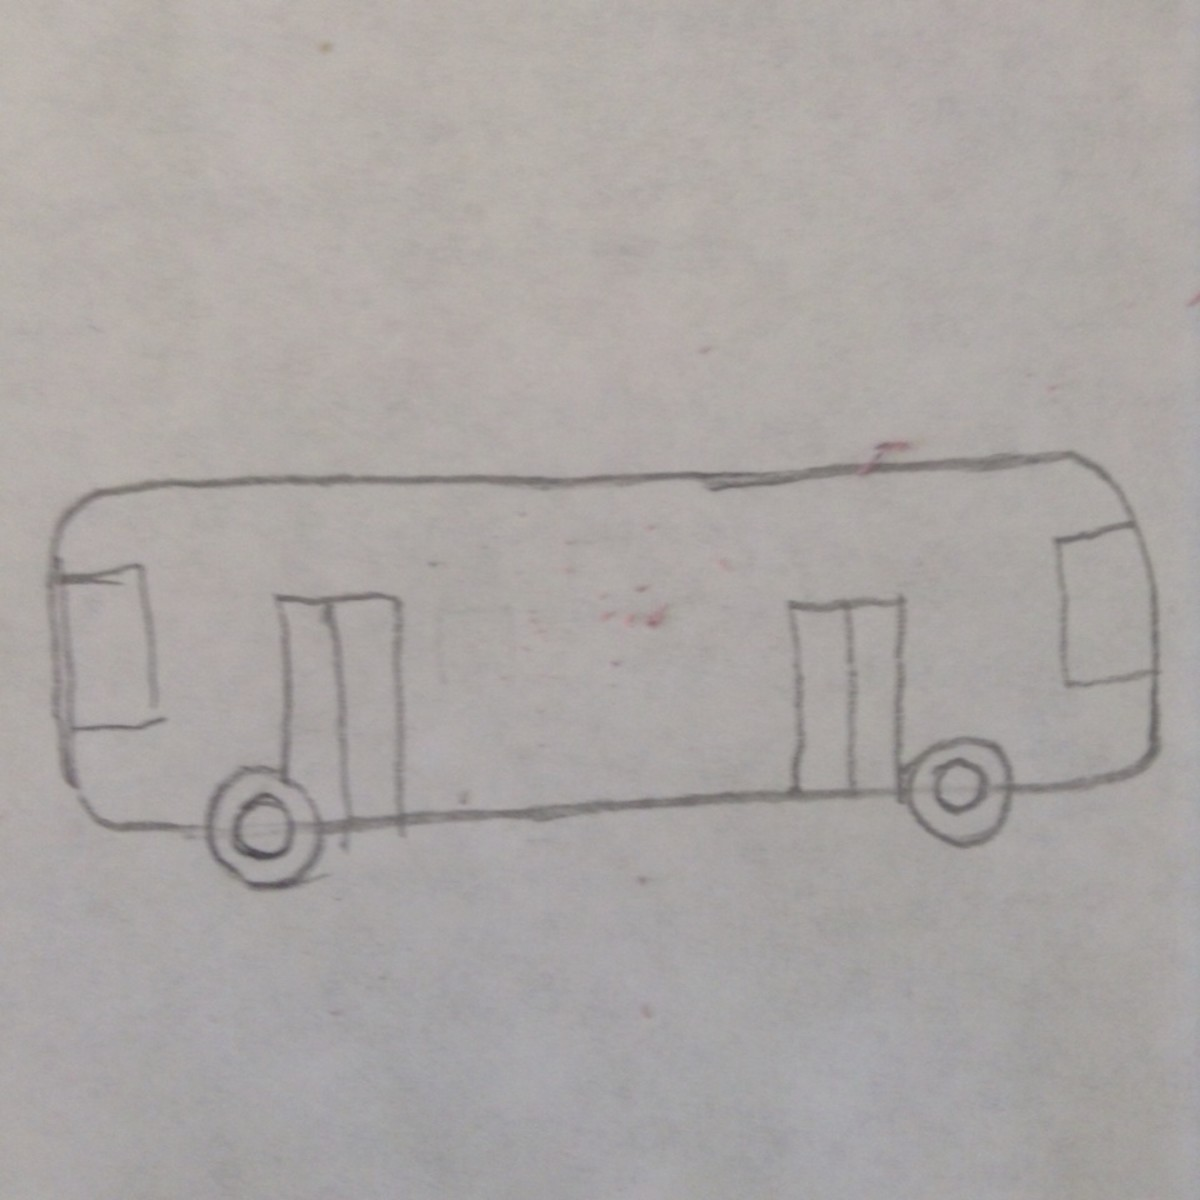 Step 4. Draw rectangles in the front and back of bus for front and back windows.